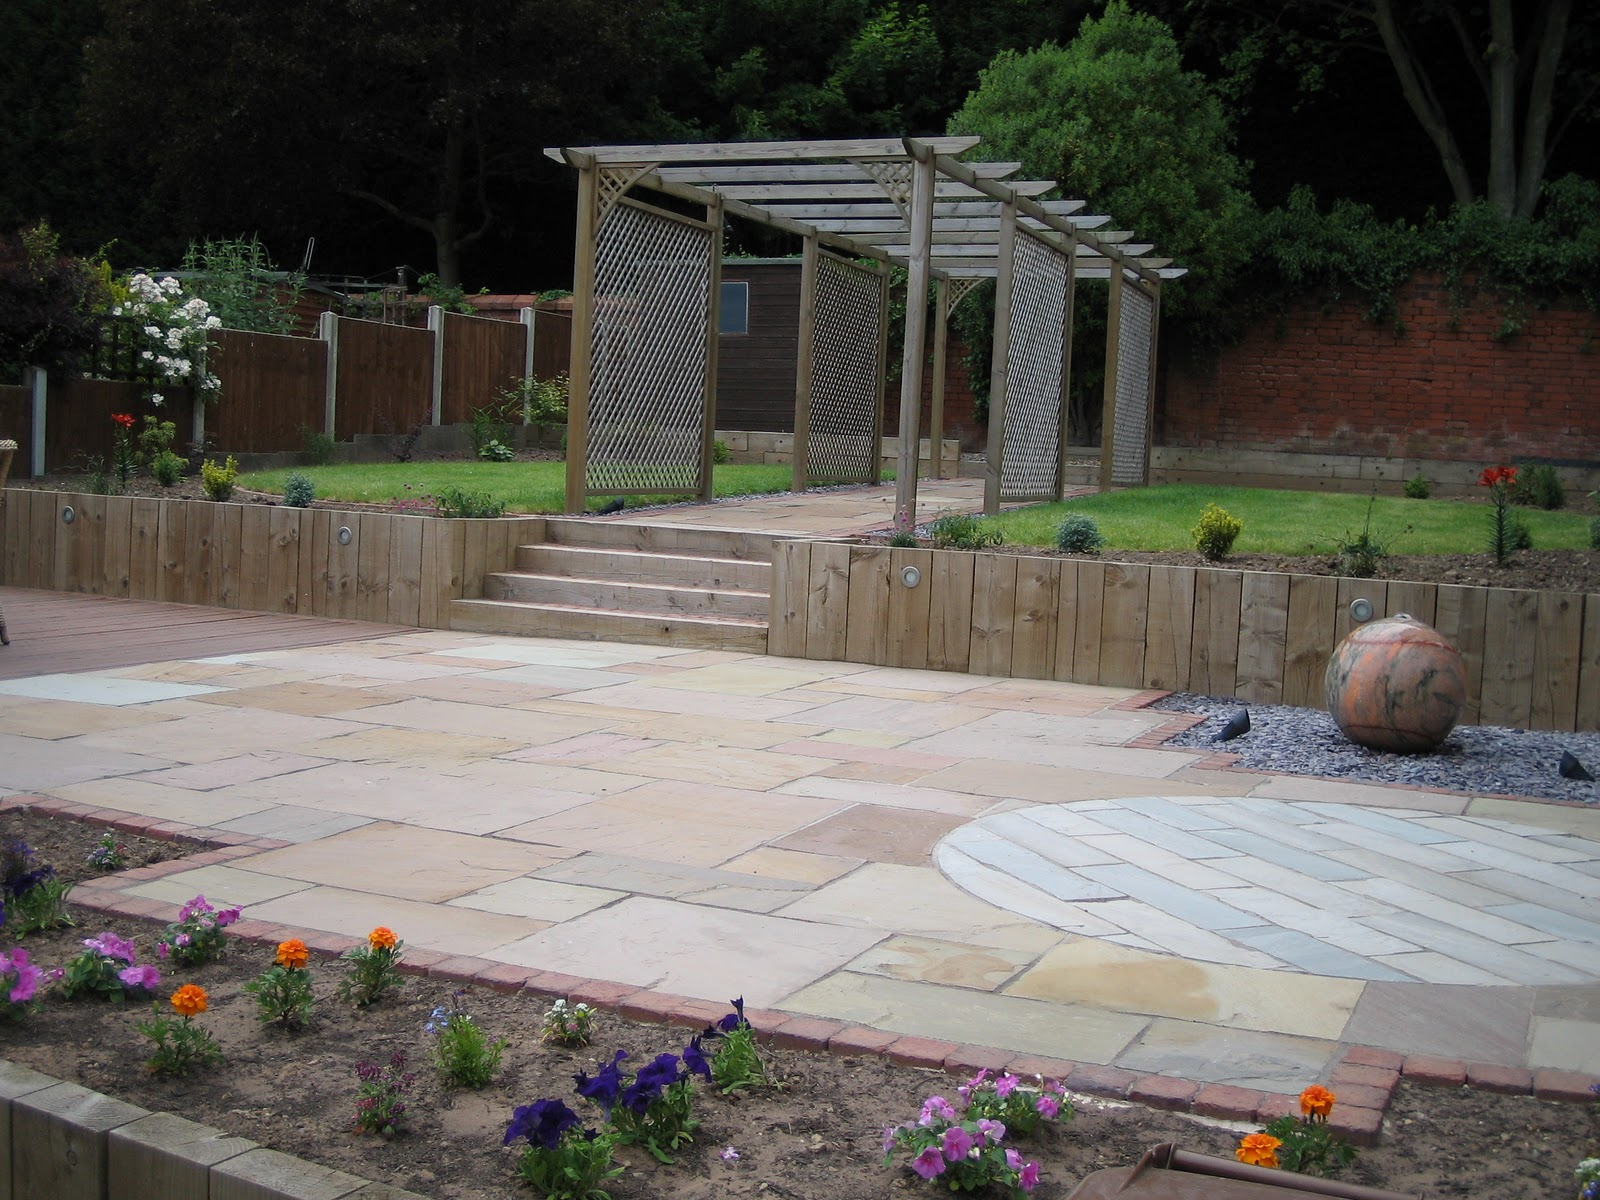 Barton Fields Patio and Garden Centre: New Garden Design ...